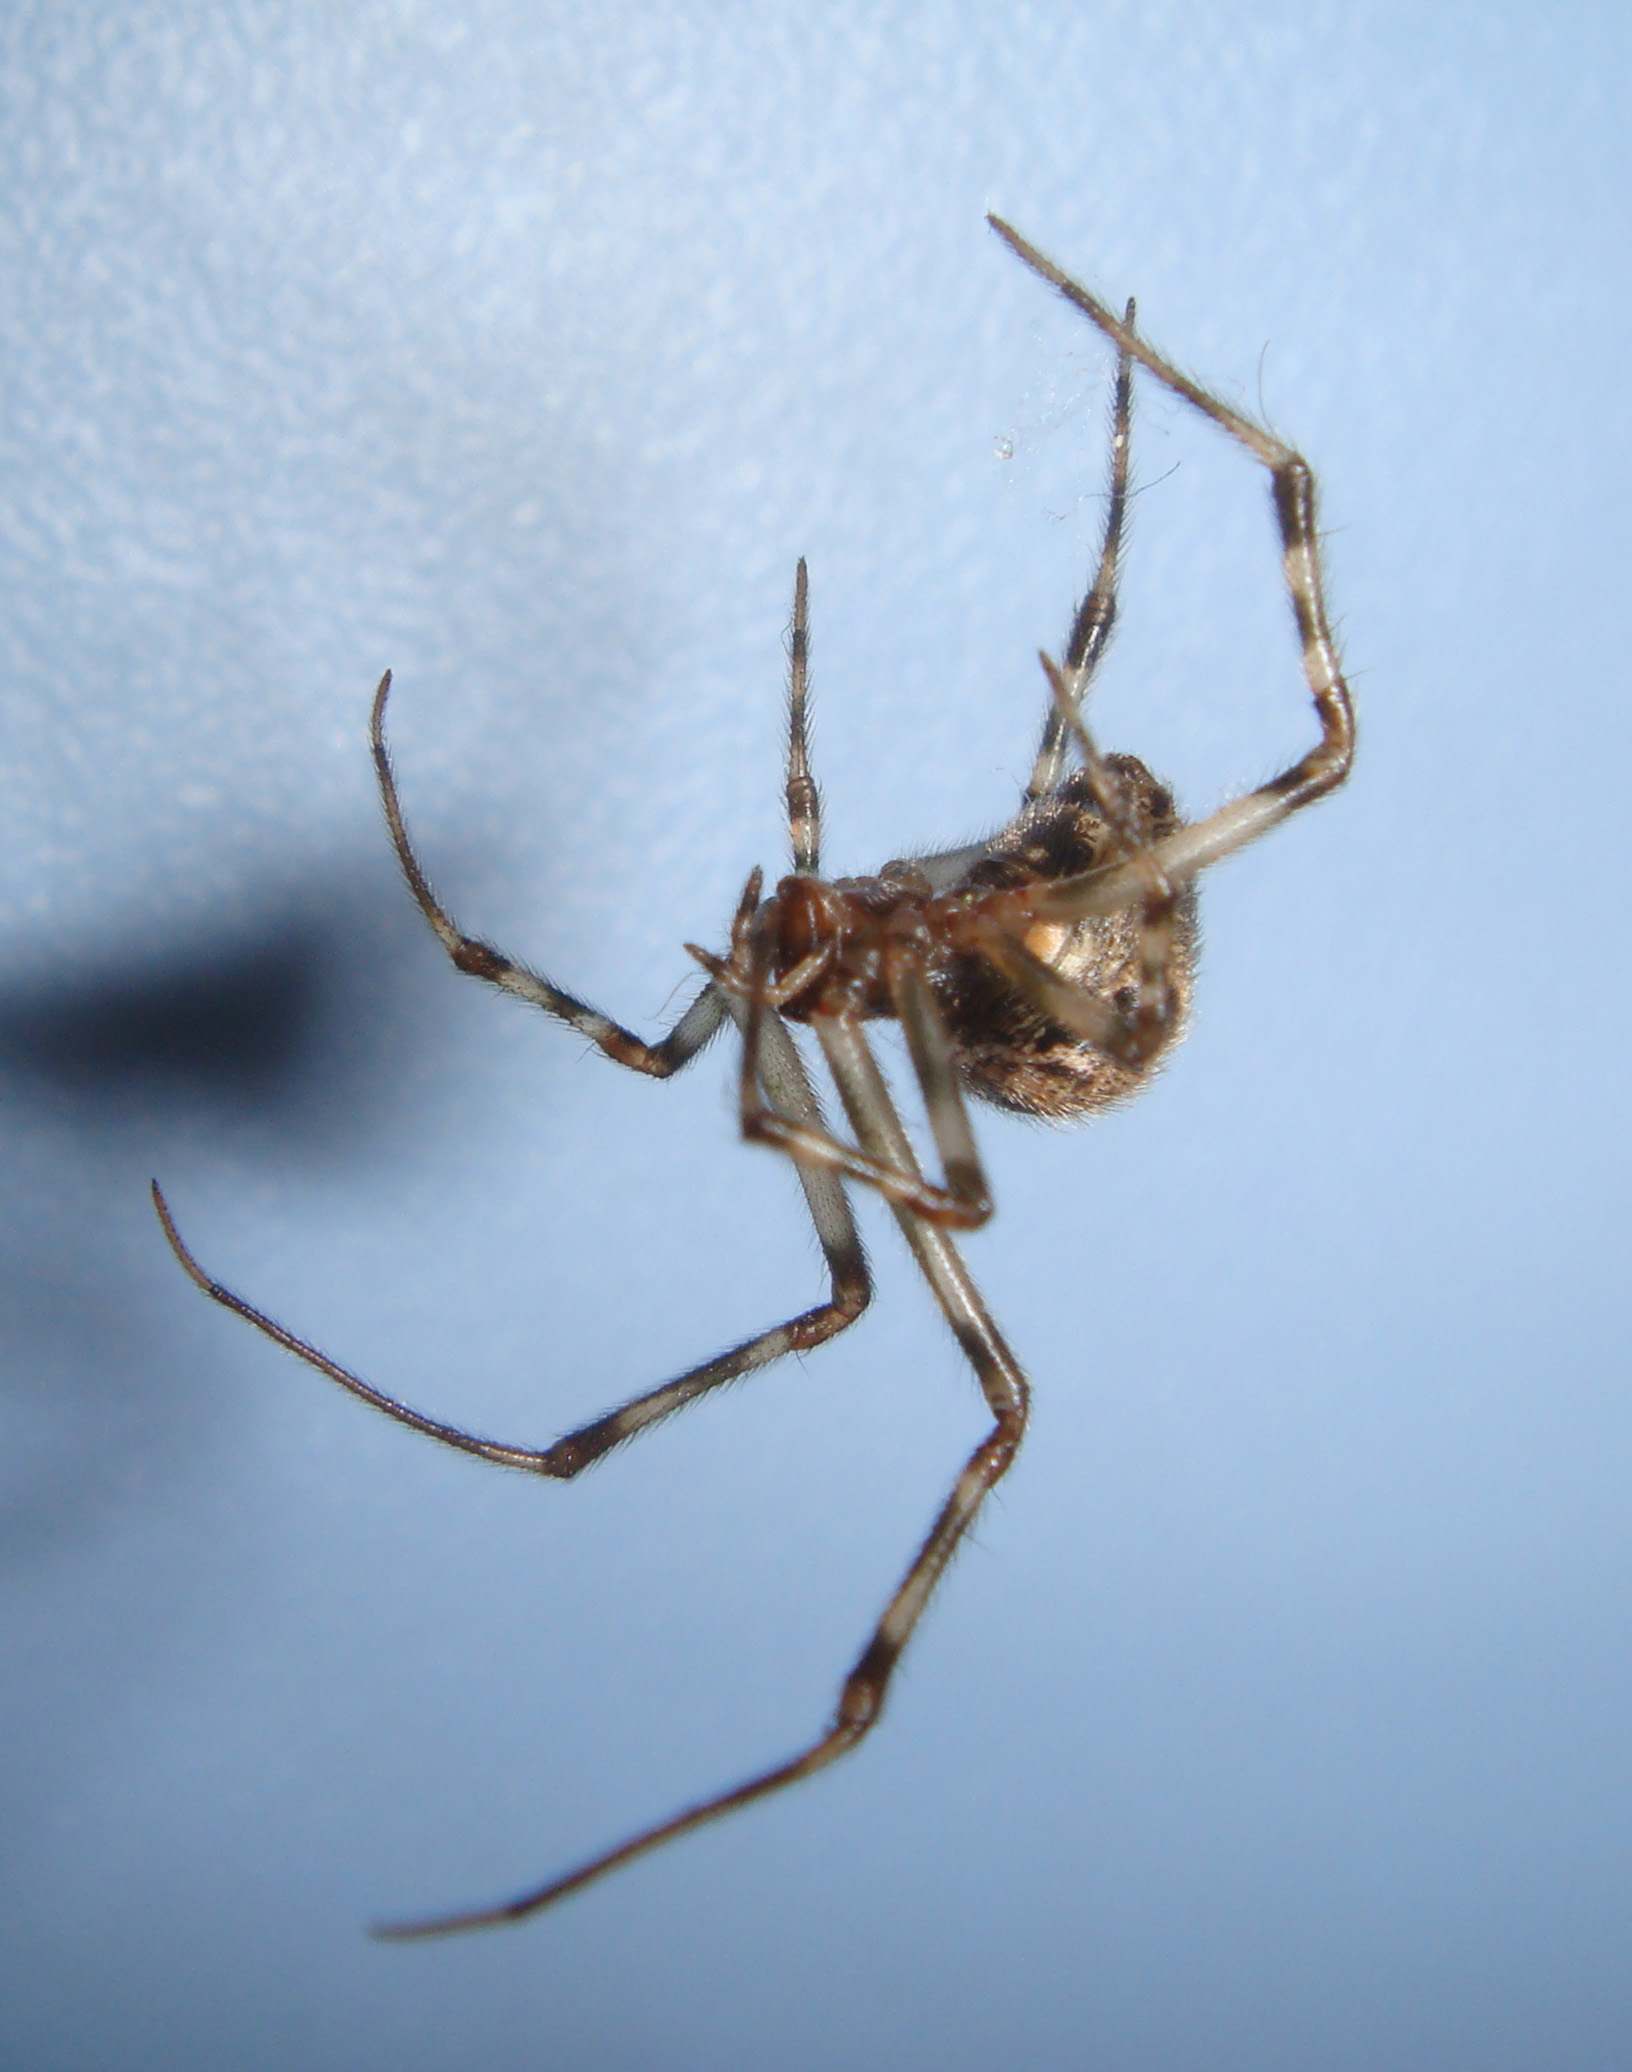 Common House Spider Spiders In Sutton Massachusetts